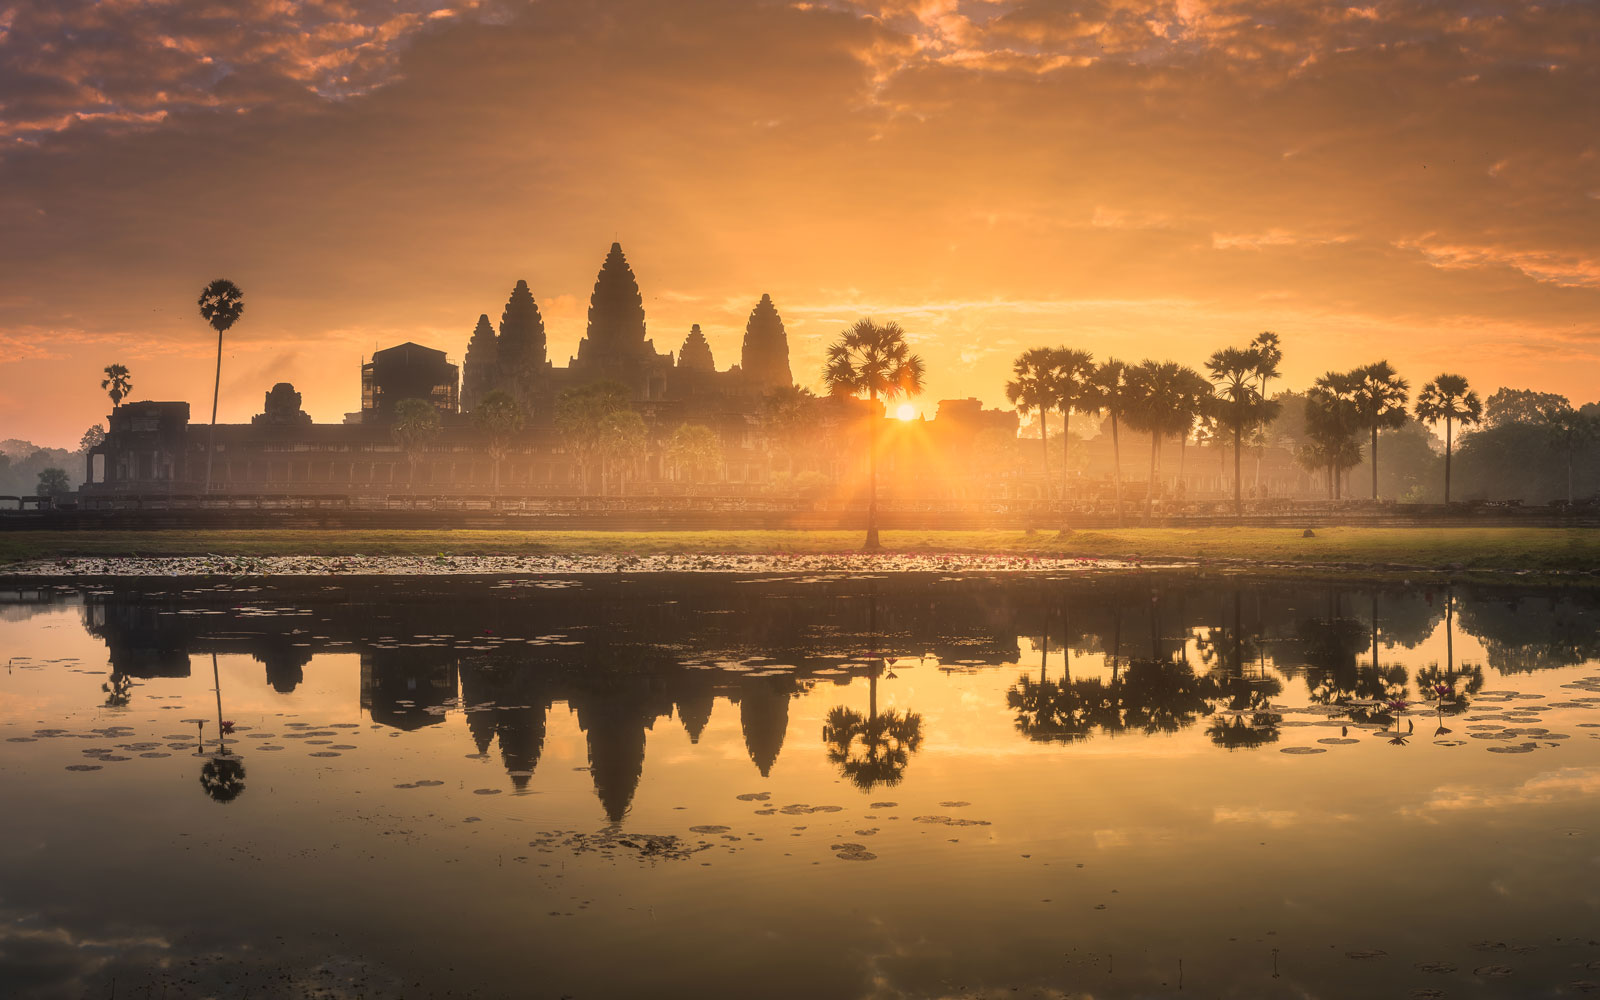 Tourists Arrested for 'Pornographic Dancing' Near Cambodian Temple